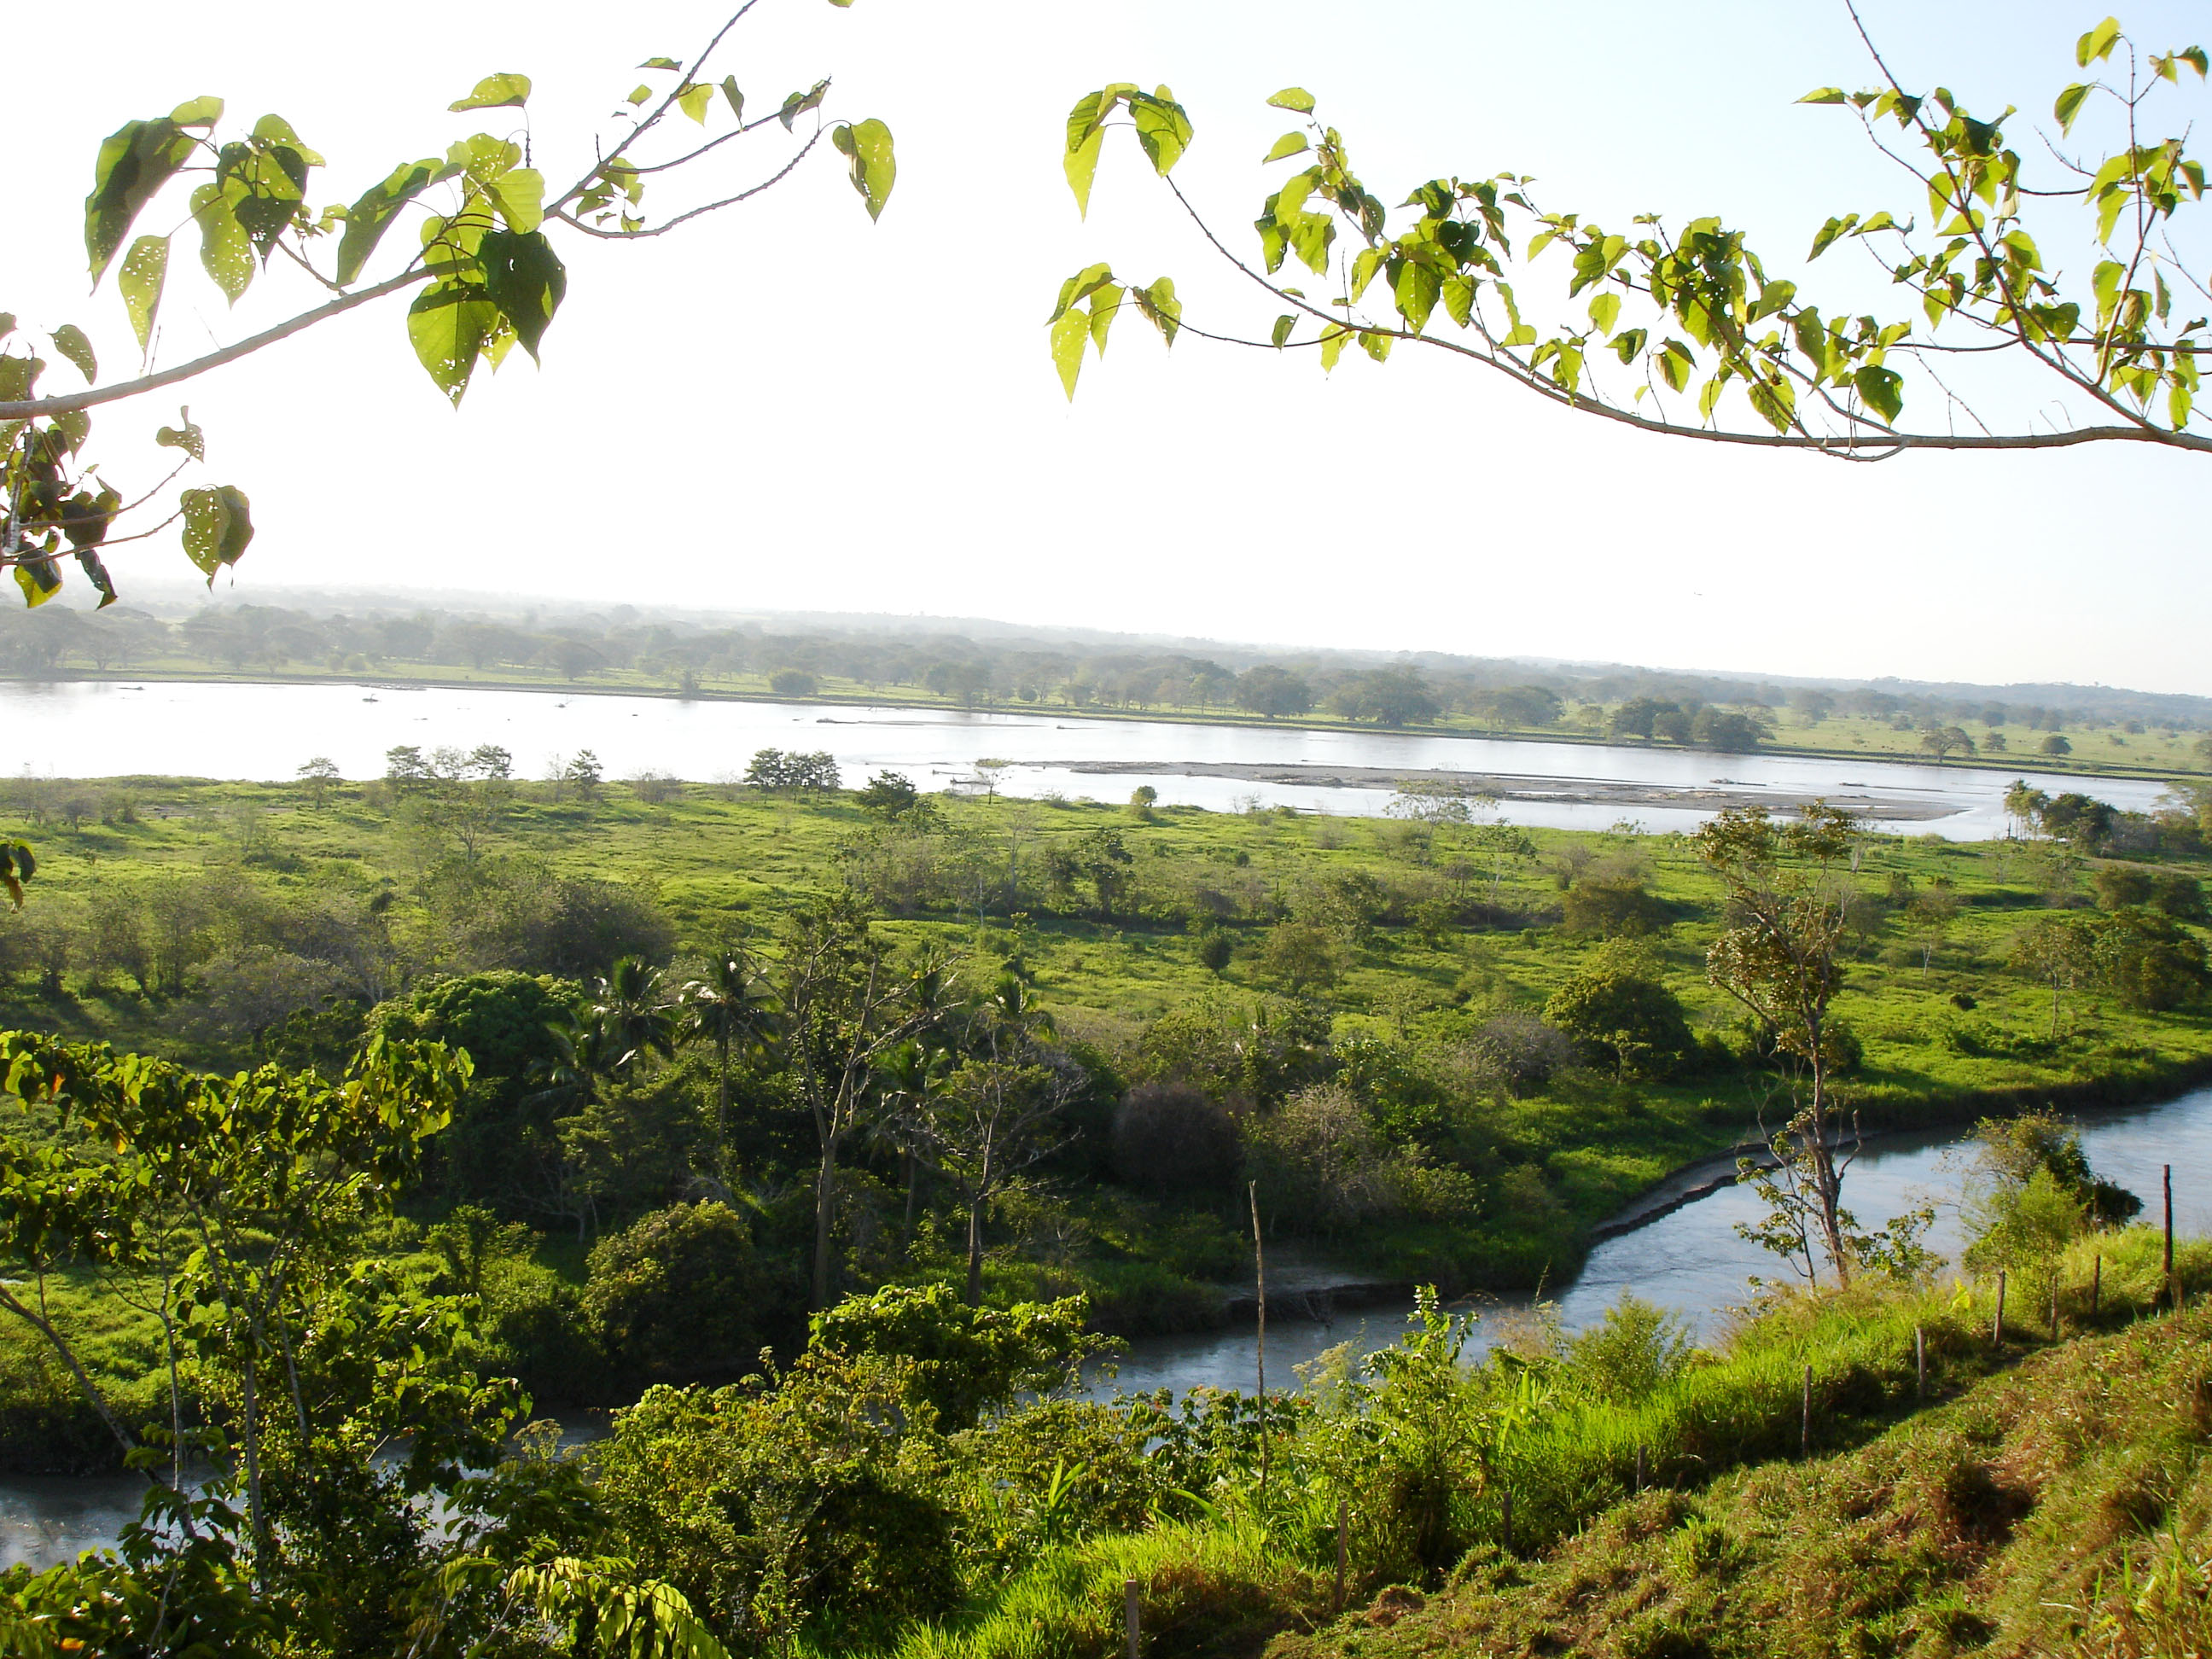 <p>The Cauca river, Colombia. Photo by corazon de melon/Wikimedia Commons</p>